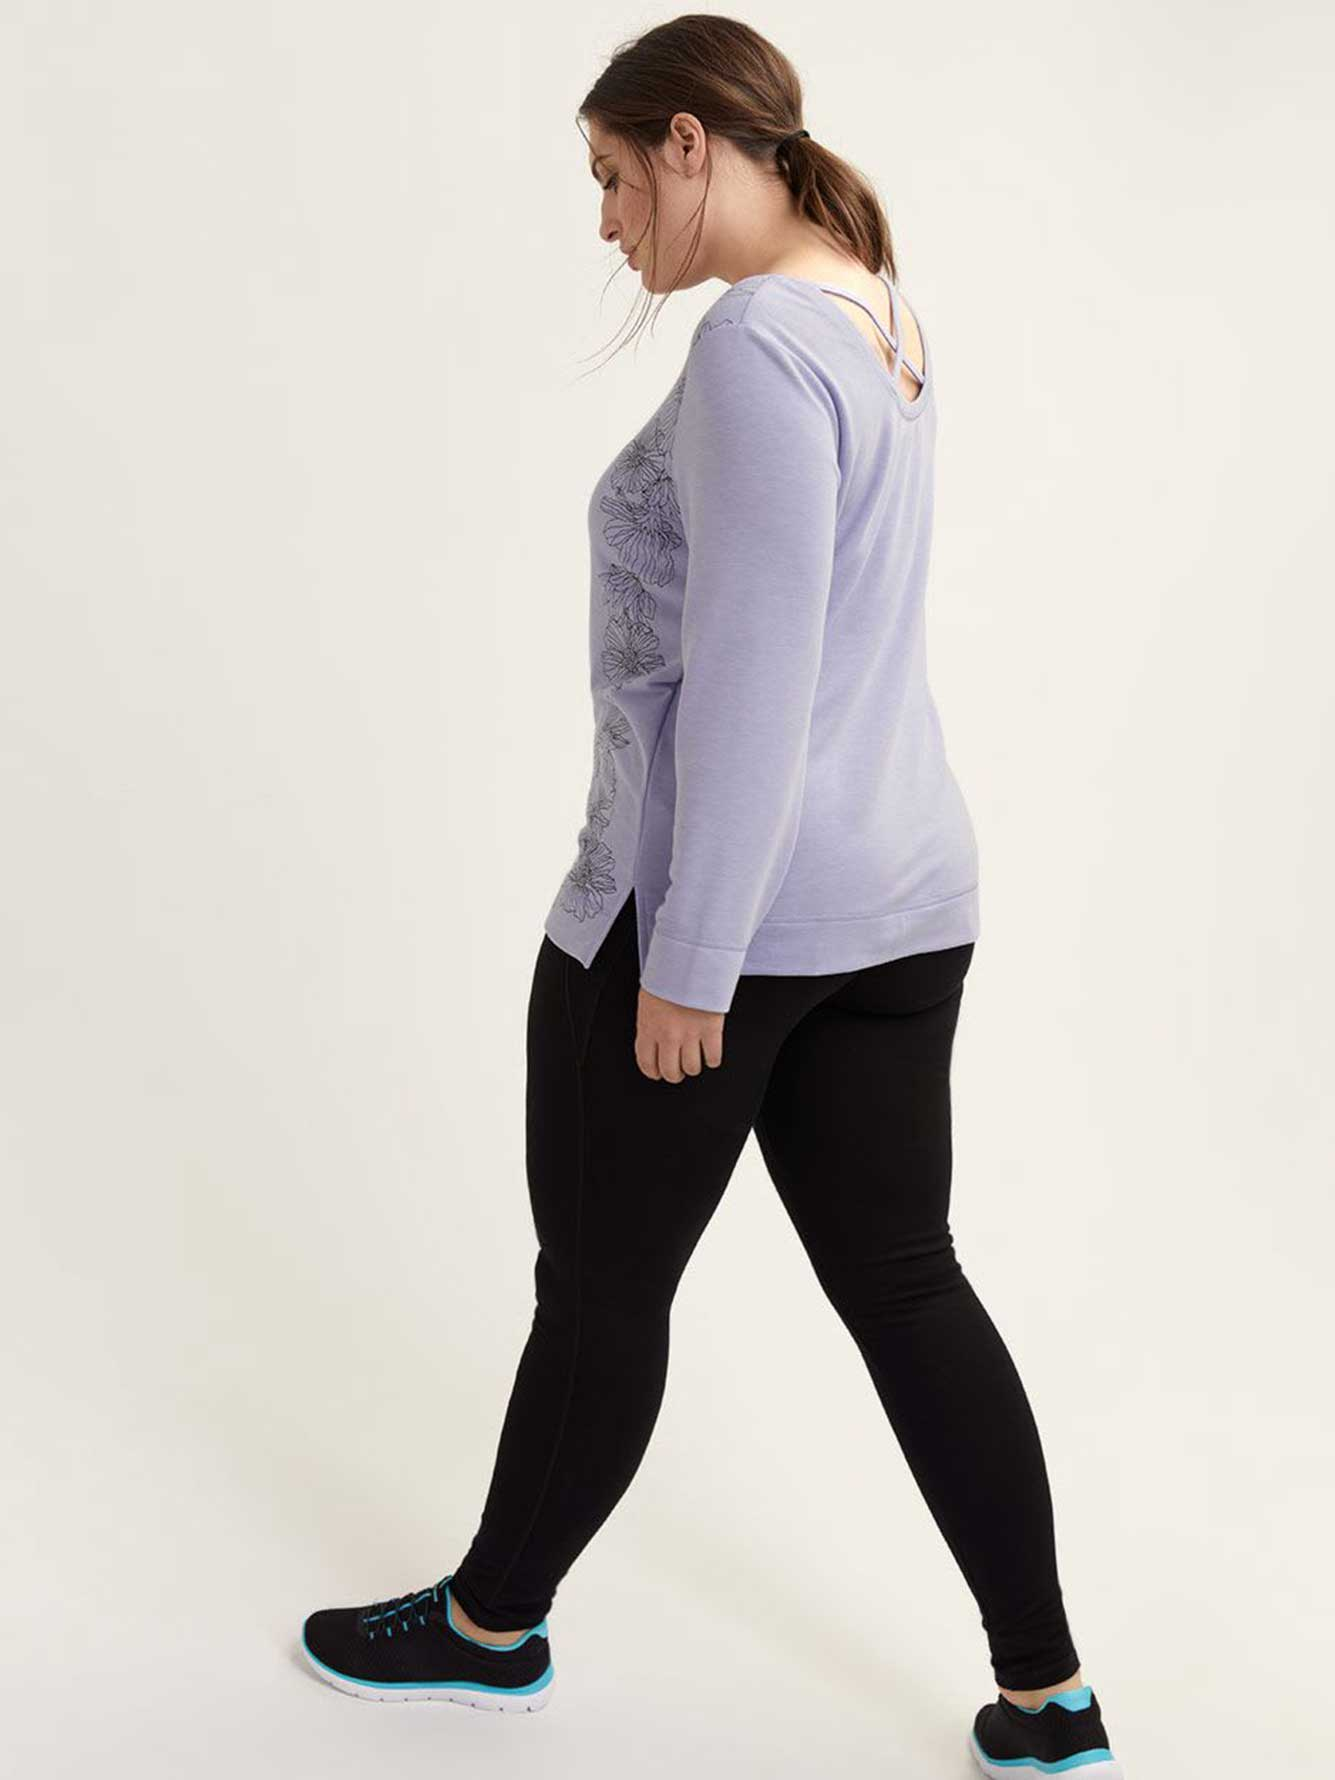 Long Sleeve Pullover with Criss-Cross Detail - ActiveZone